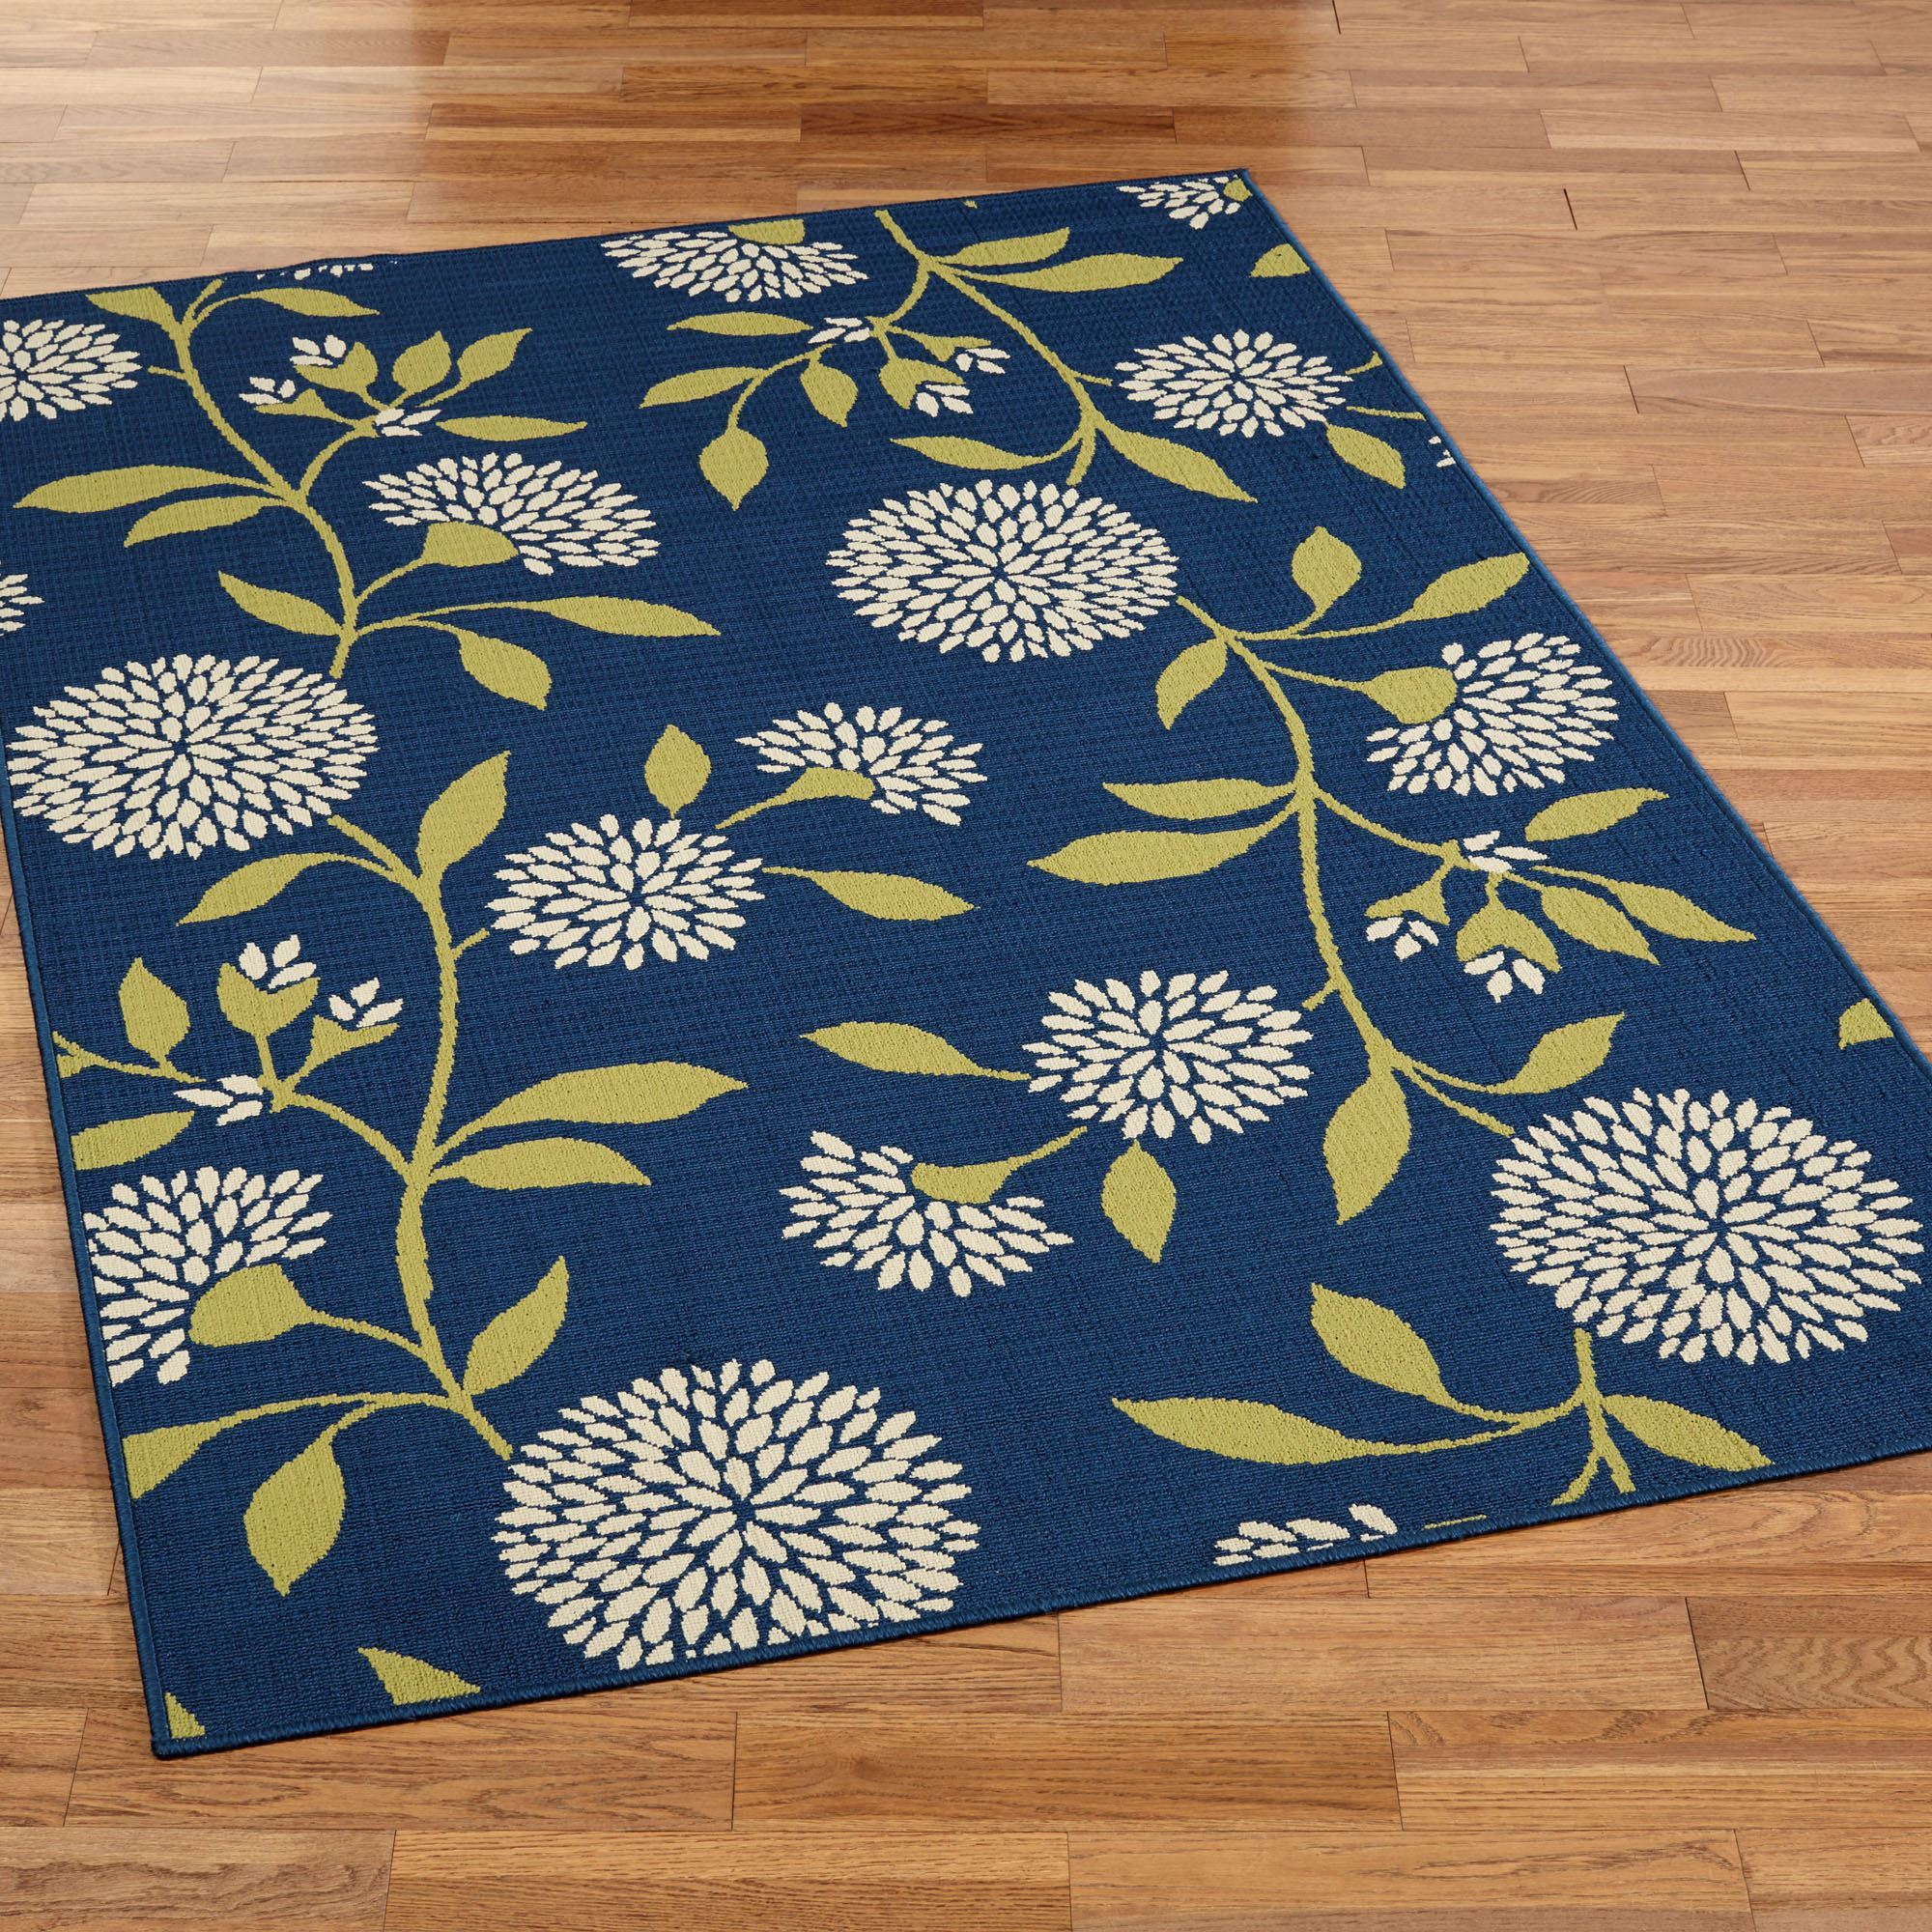 Greatest Dandelion Floral Indoor Outdoor Area Rugs CX22